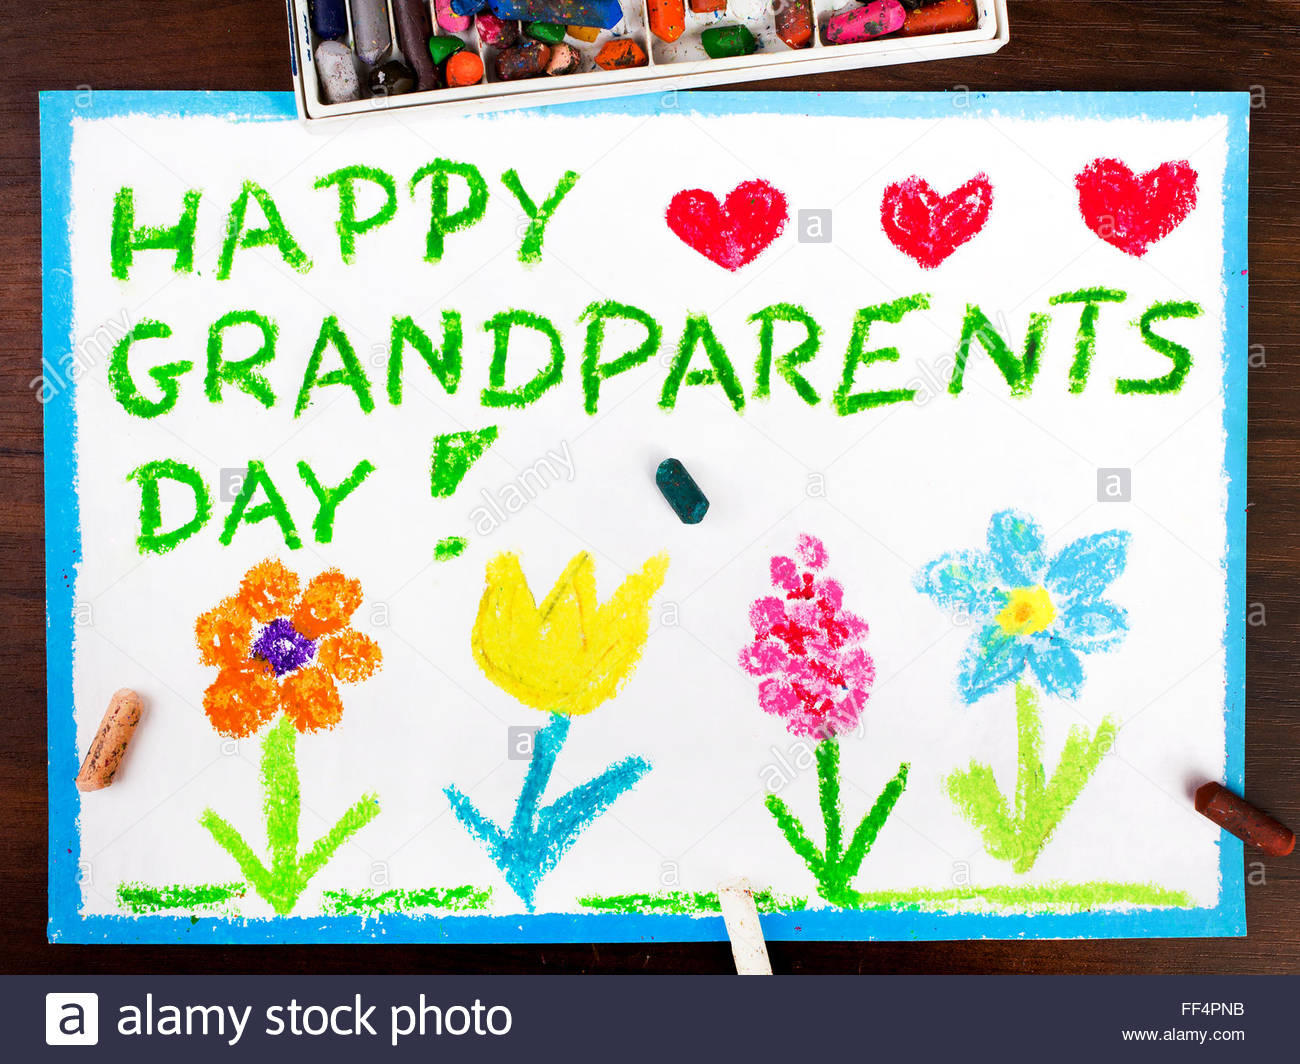 1300x1064 Colorful Drawing Grandparents Day Card Stock Photo, Royalty Free